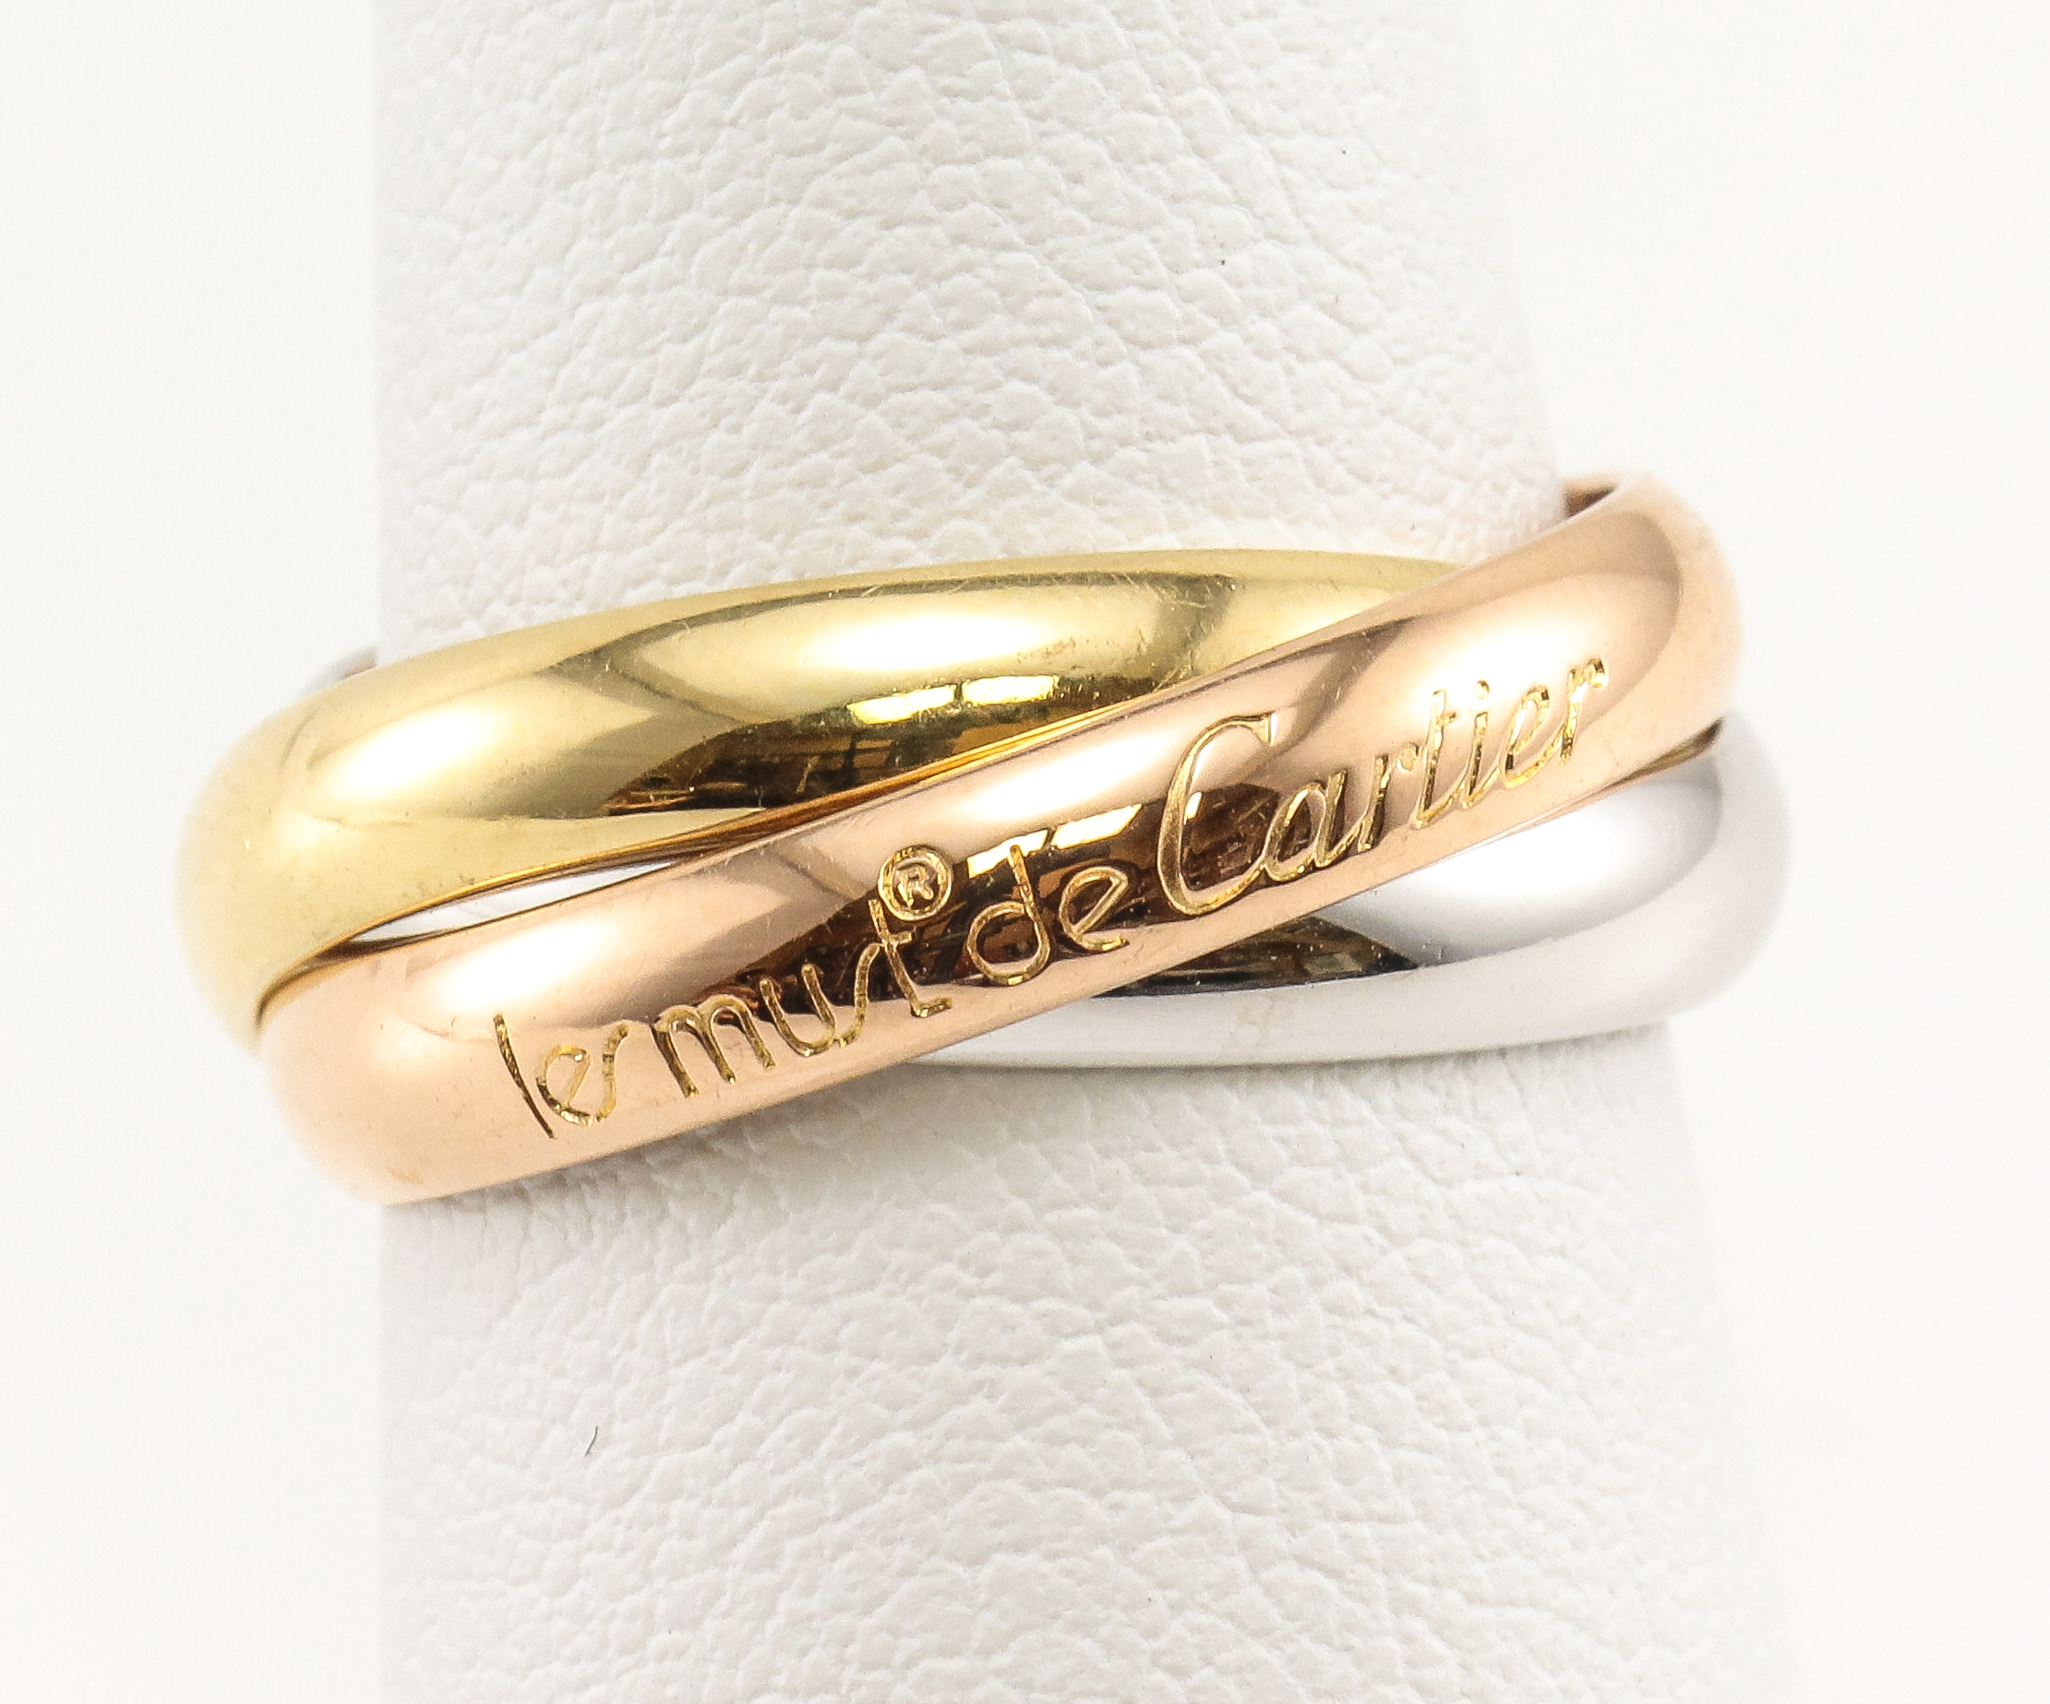 78ad97204155 Les Must de CARTIER Trinity 18K Tricolor Yellow White Rose 750 Gold Band  Ring